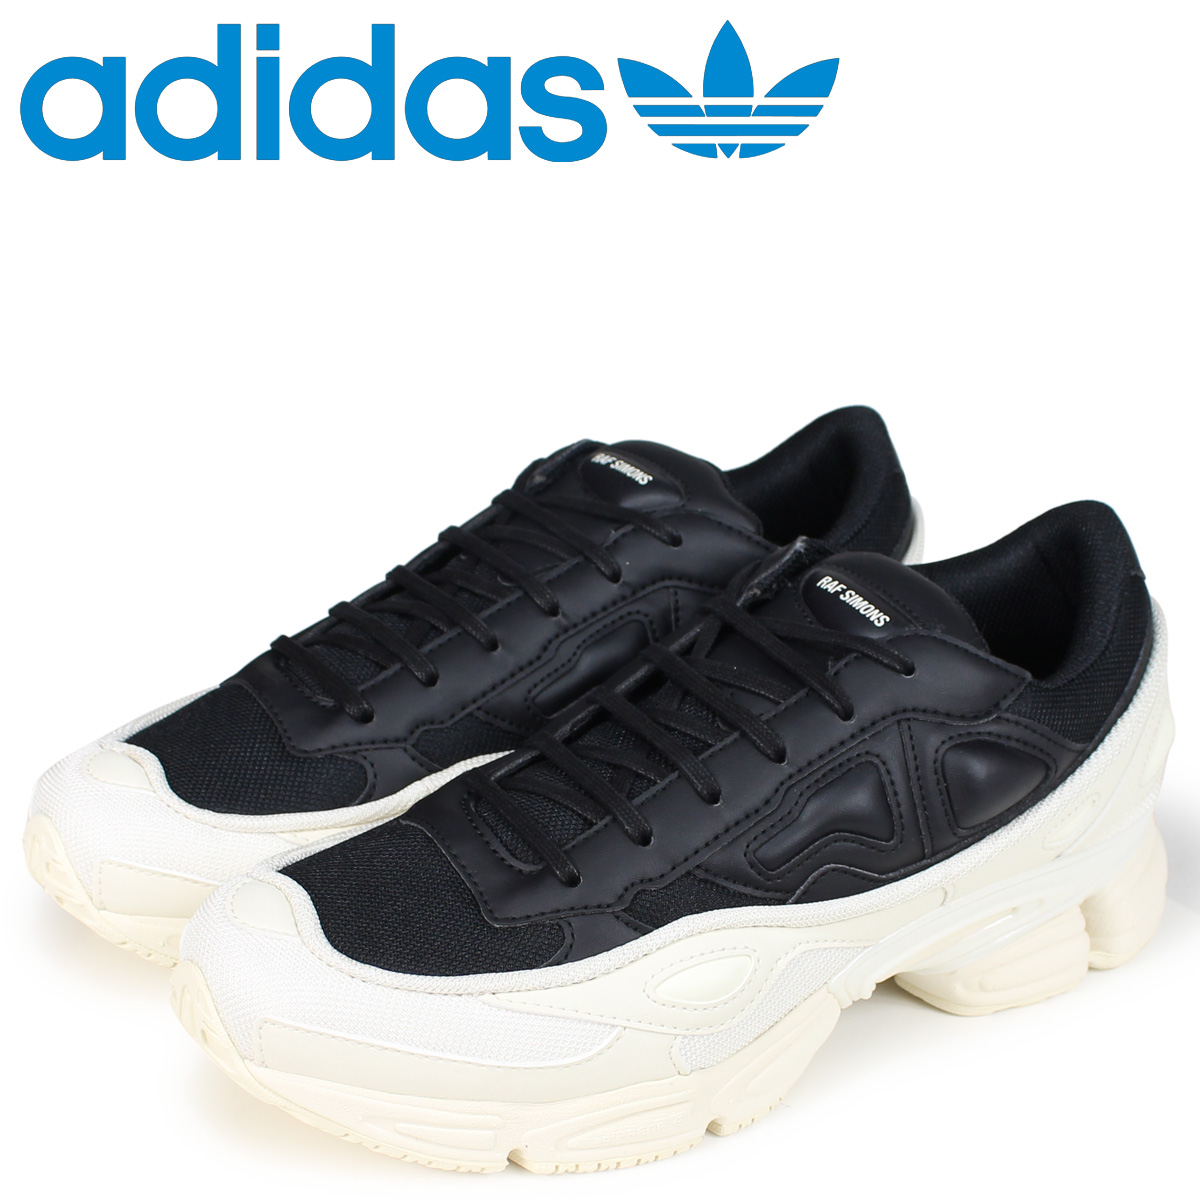 best price pick up wholesale outlet adidas Originals rough Simmons Adidas originals sneakers RAF SIMONS オズウィーゴー  RSOZWEEGO men F34264 white white